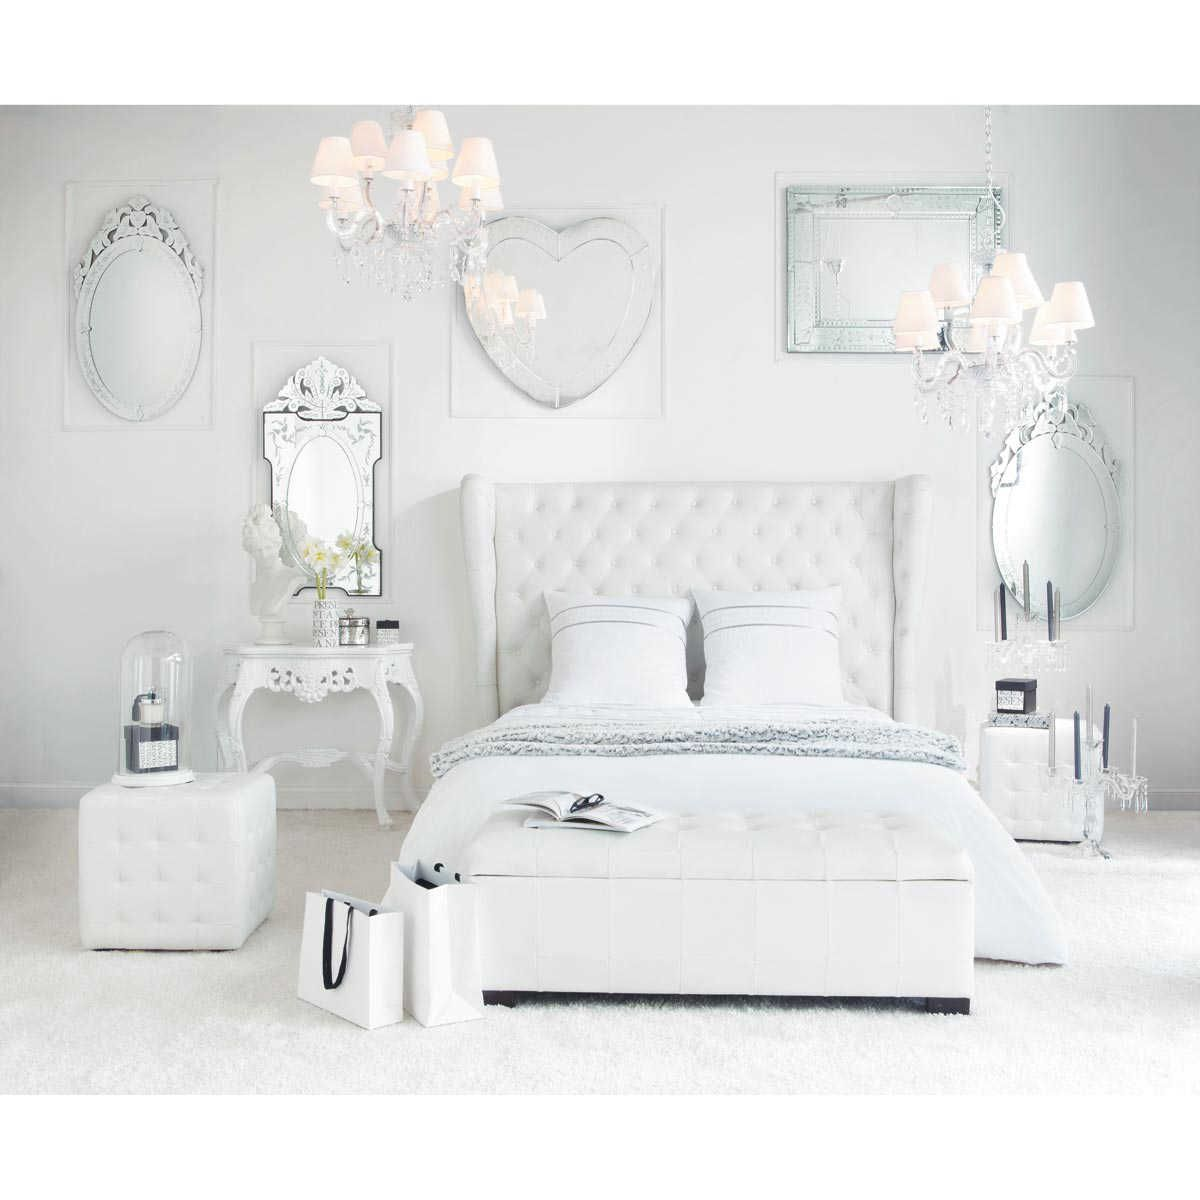 miroir en verre h 90 cm v nitien maisons du monde chambre pinterest miroirs en verre. Black Bedroom Furniture Sets. Home Design Ideas